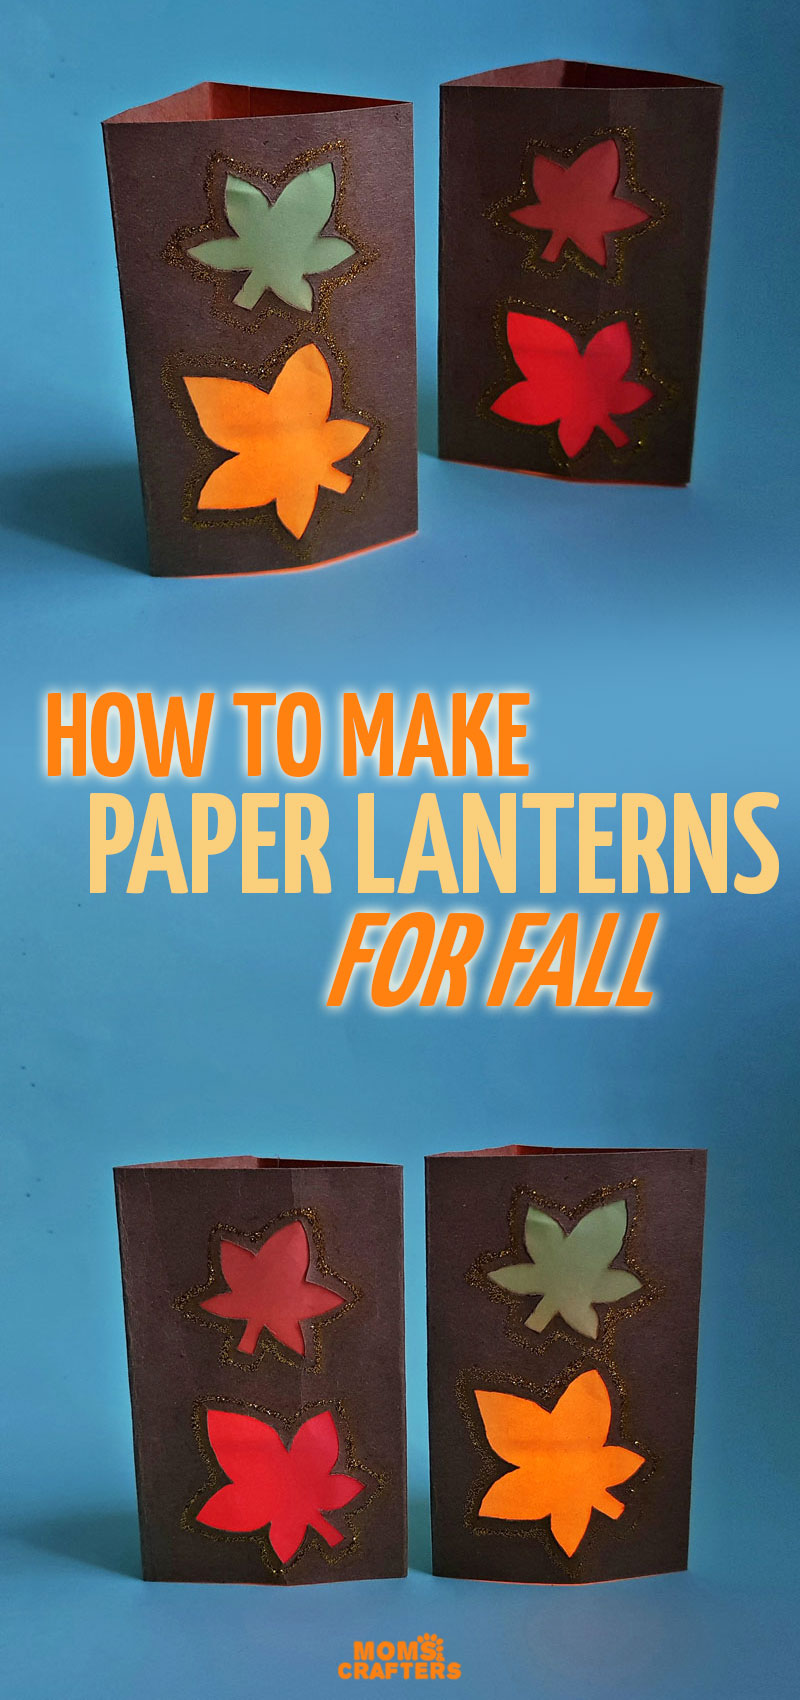 Click to learn how to make fall luminaries and beatiful paper lanterns for fall! This sweet fall leaf craft is perfect for teens, tweens, kids, and grown-ups and a cool DIY project to decorate your mantel for autumn.